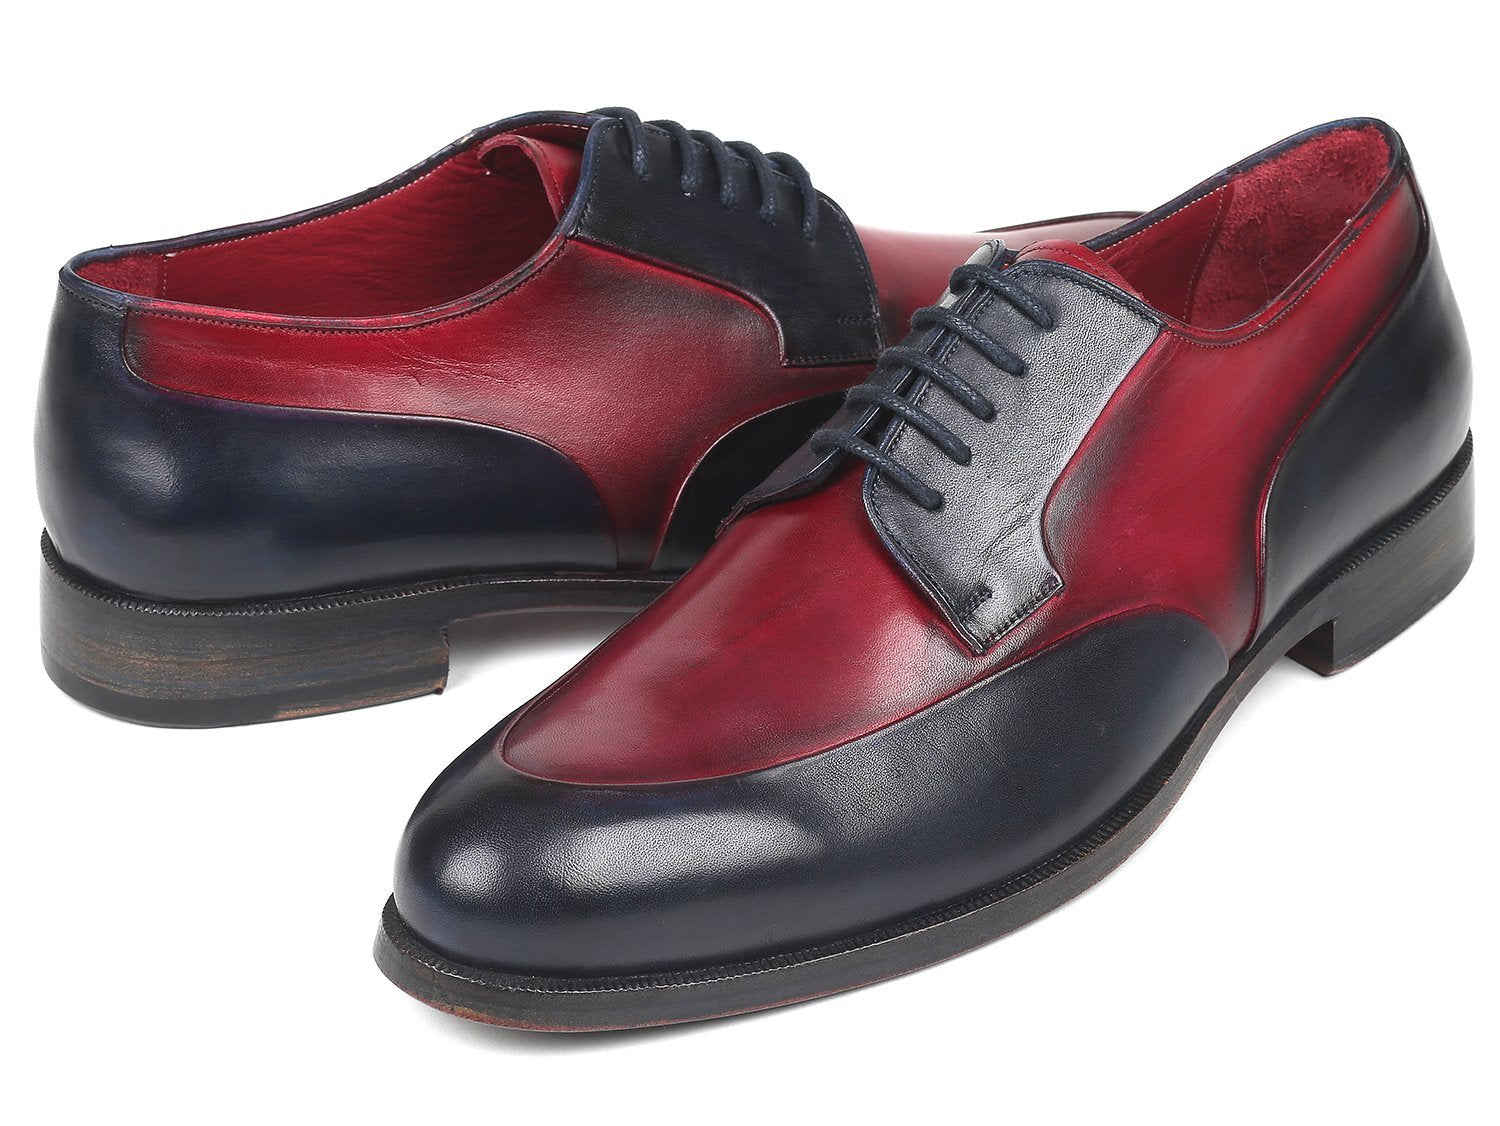 Paul Parkman Men's Bordeaux & Navy Derby Shoes (ID#993-BDNV)